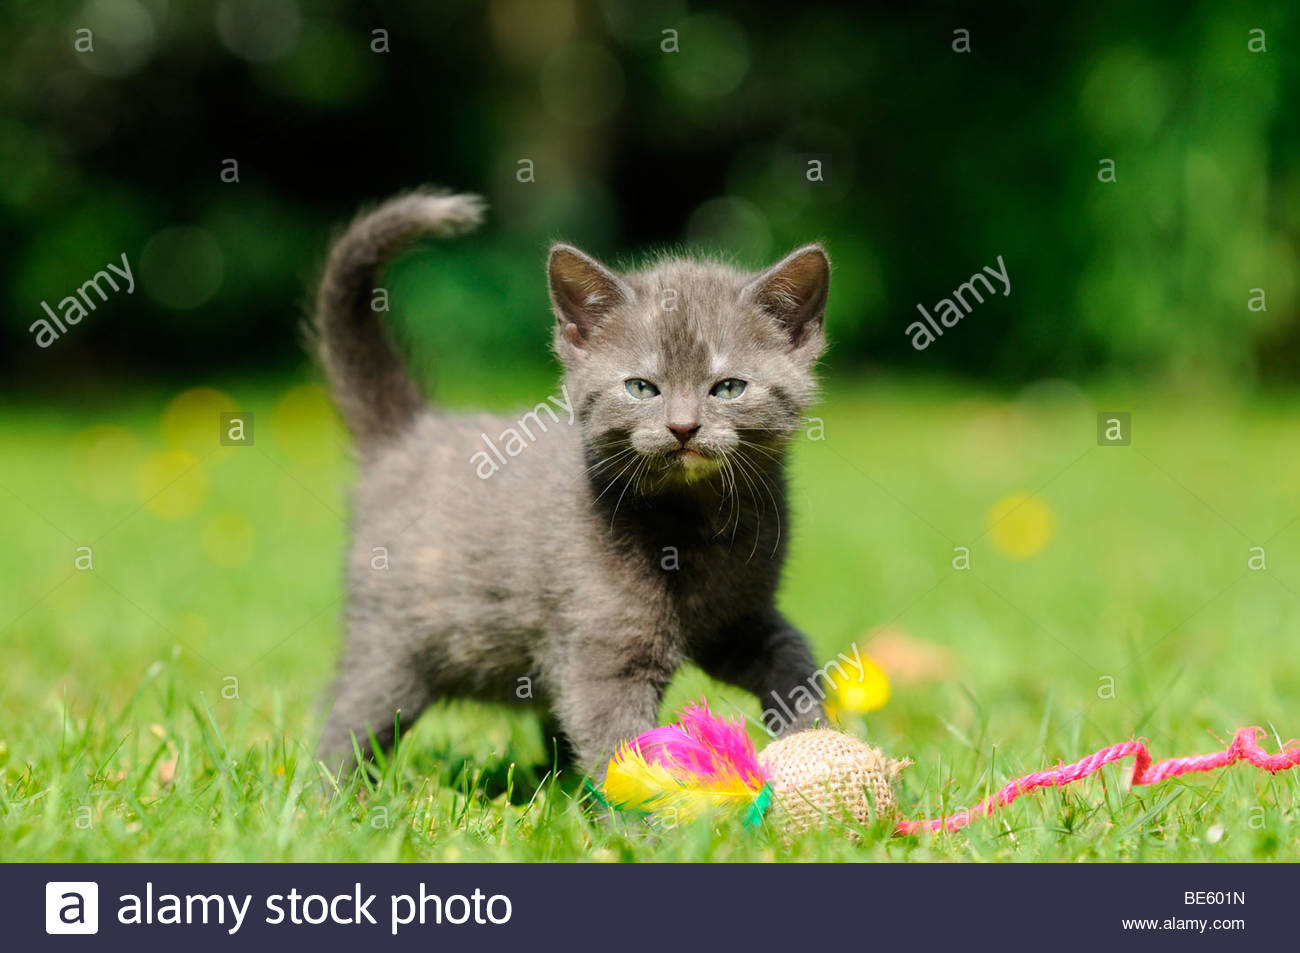 Cat (Felis catus), kitten - Stock Image